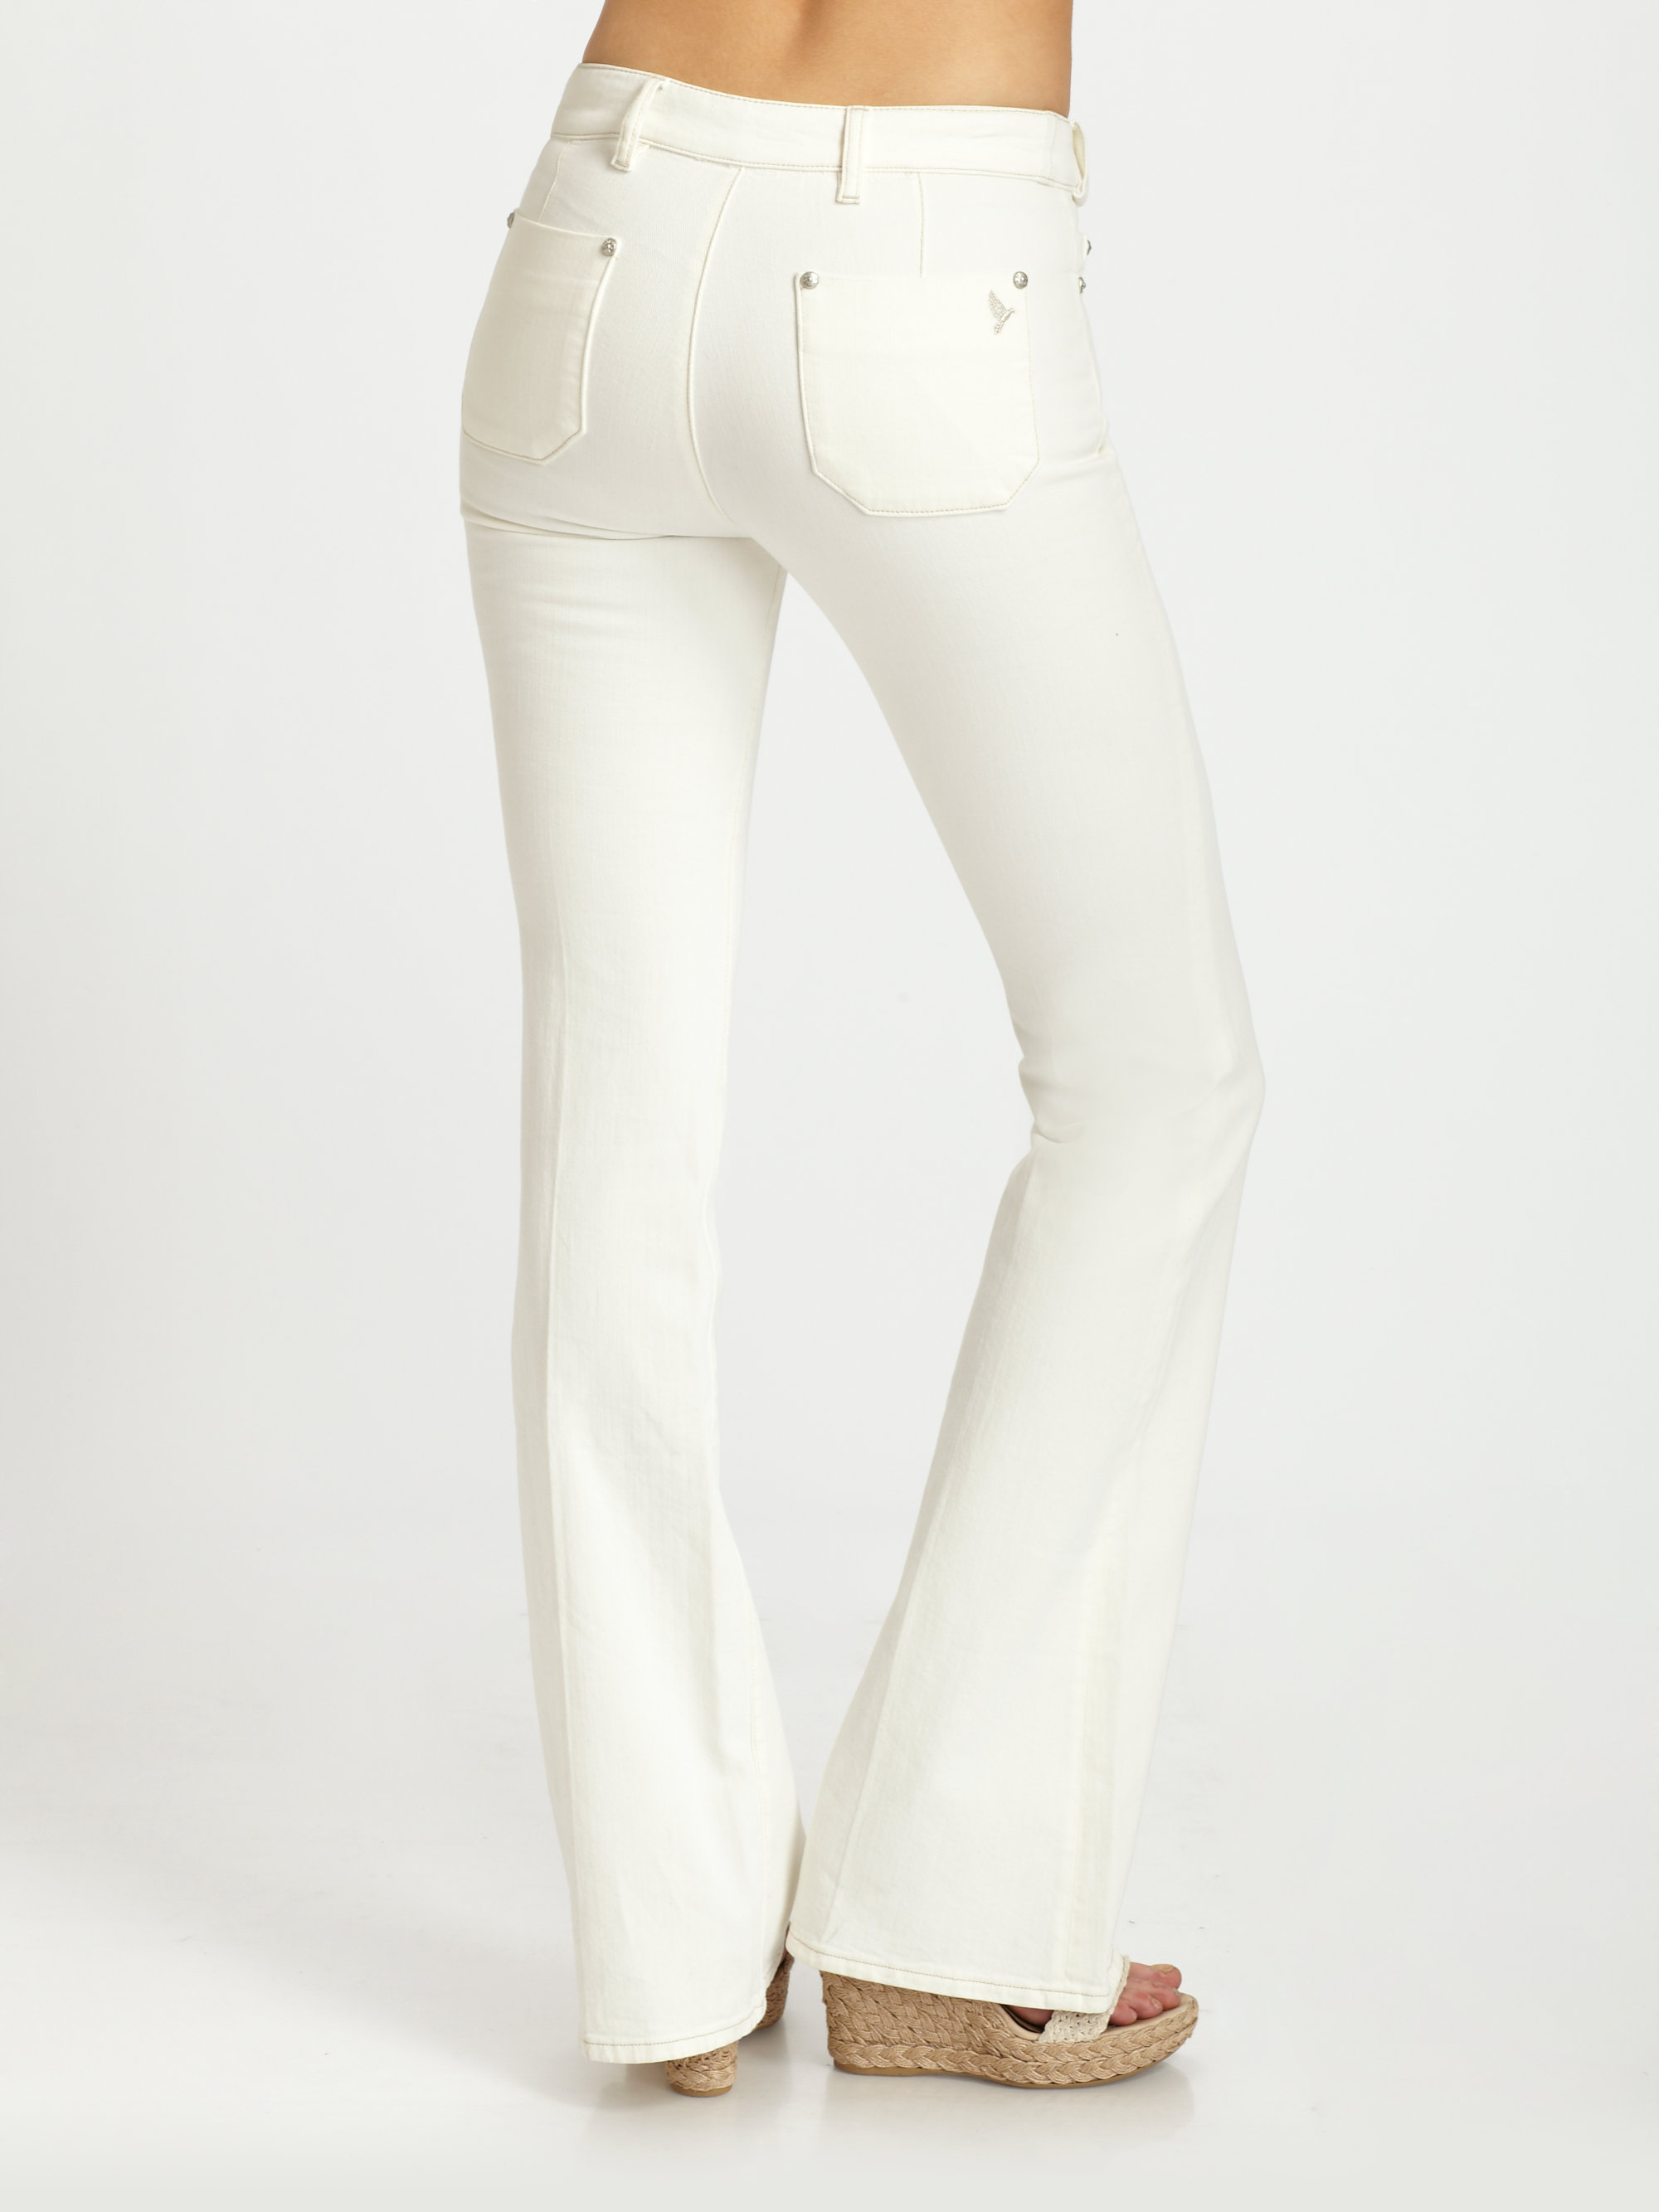 M.i.h jeans Marrakesh Aviator Kick Flare Jeans in White   Lyst